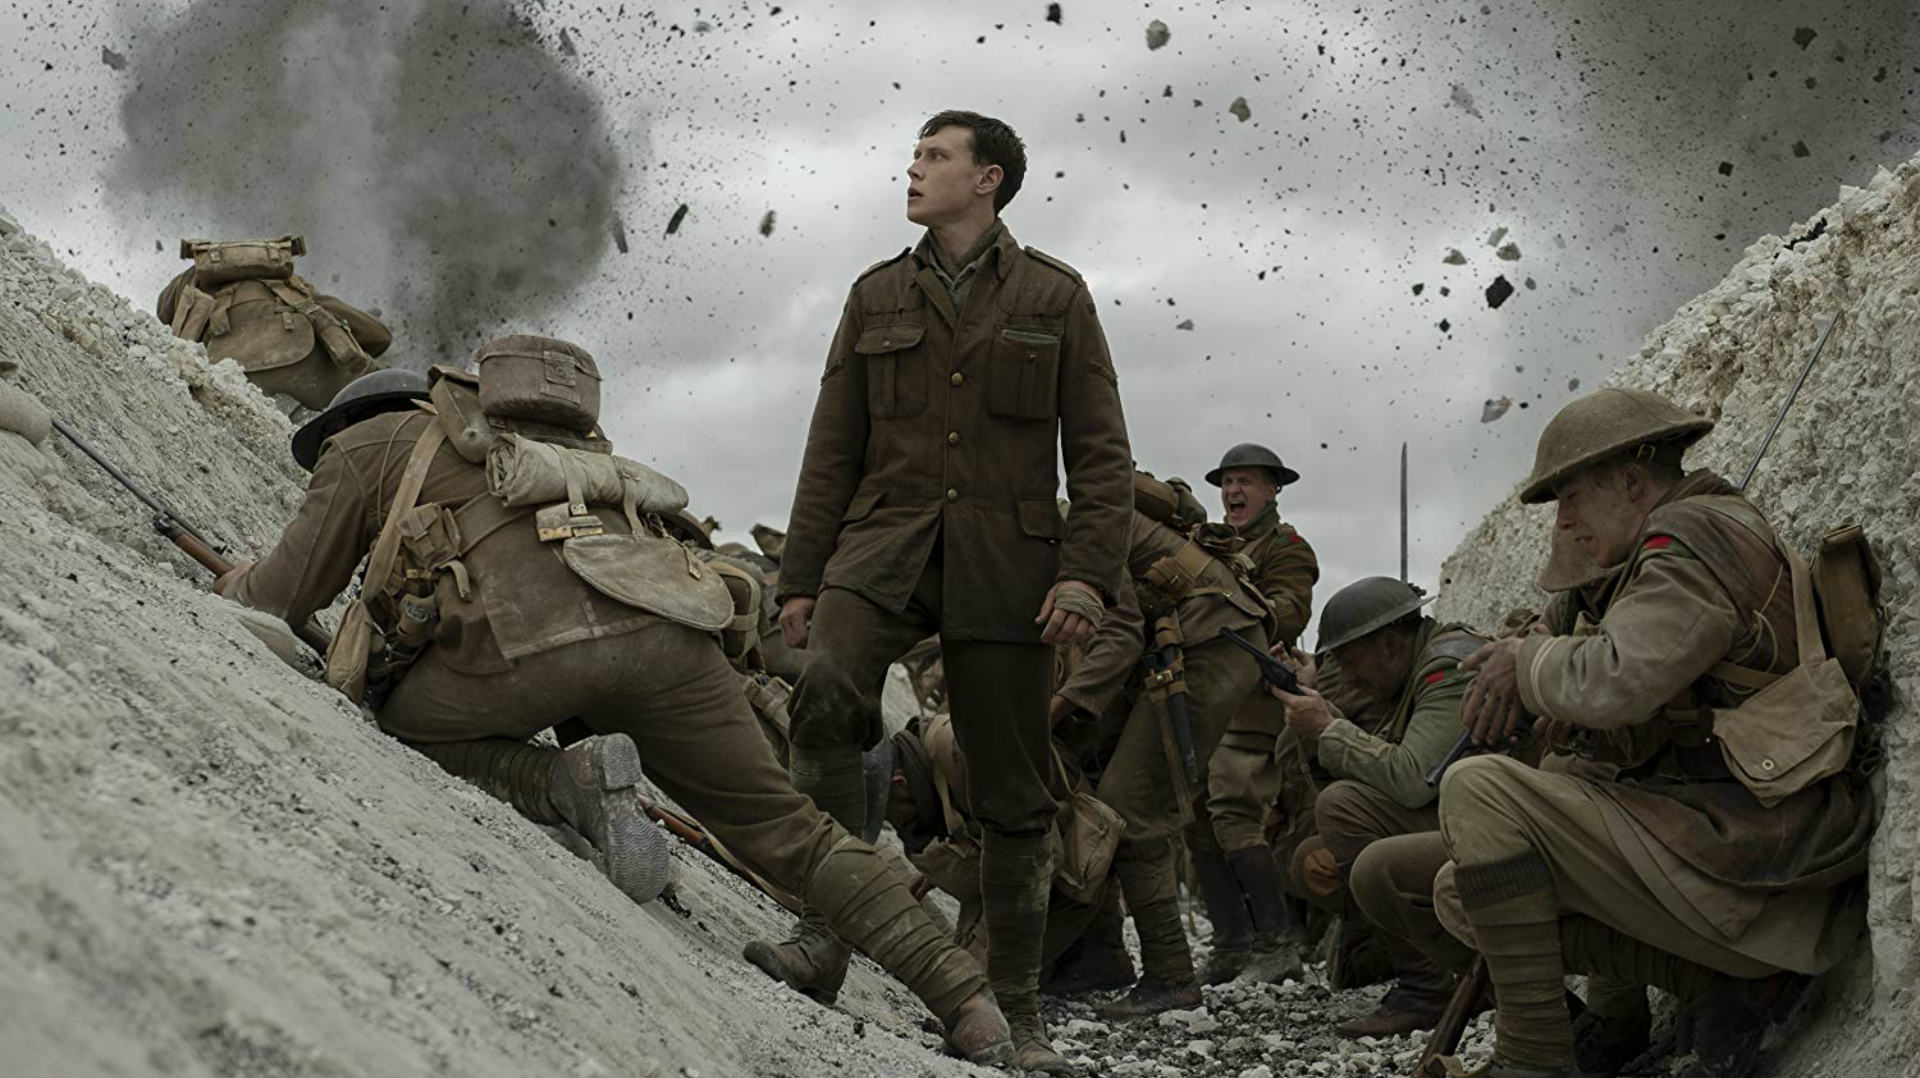 Cumberbatch and Firth Class up 1917's Explosive Trailer